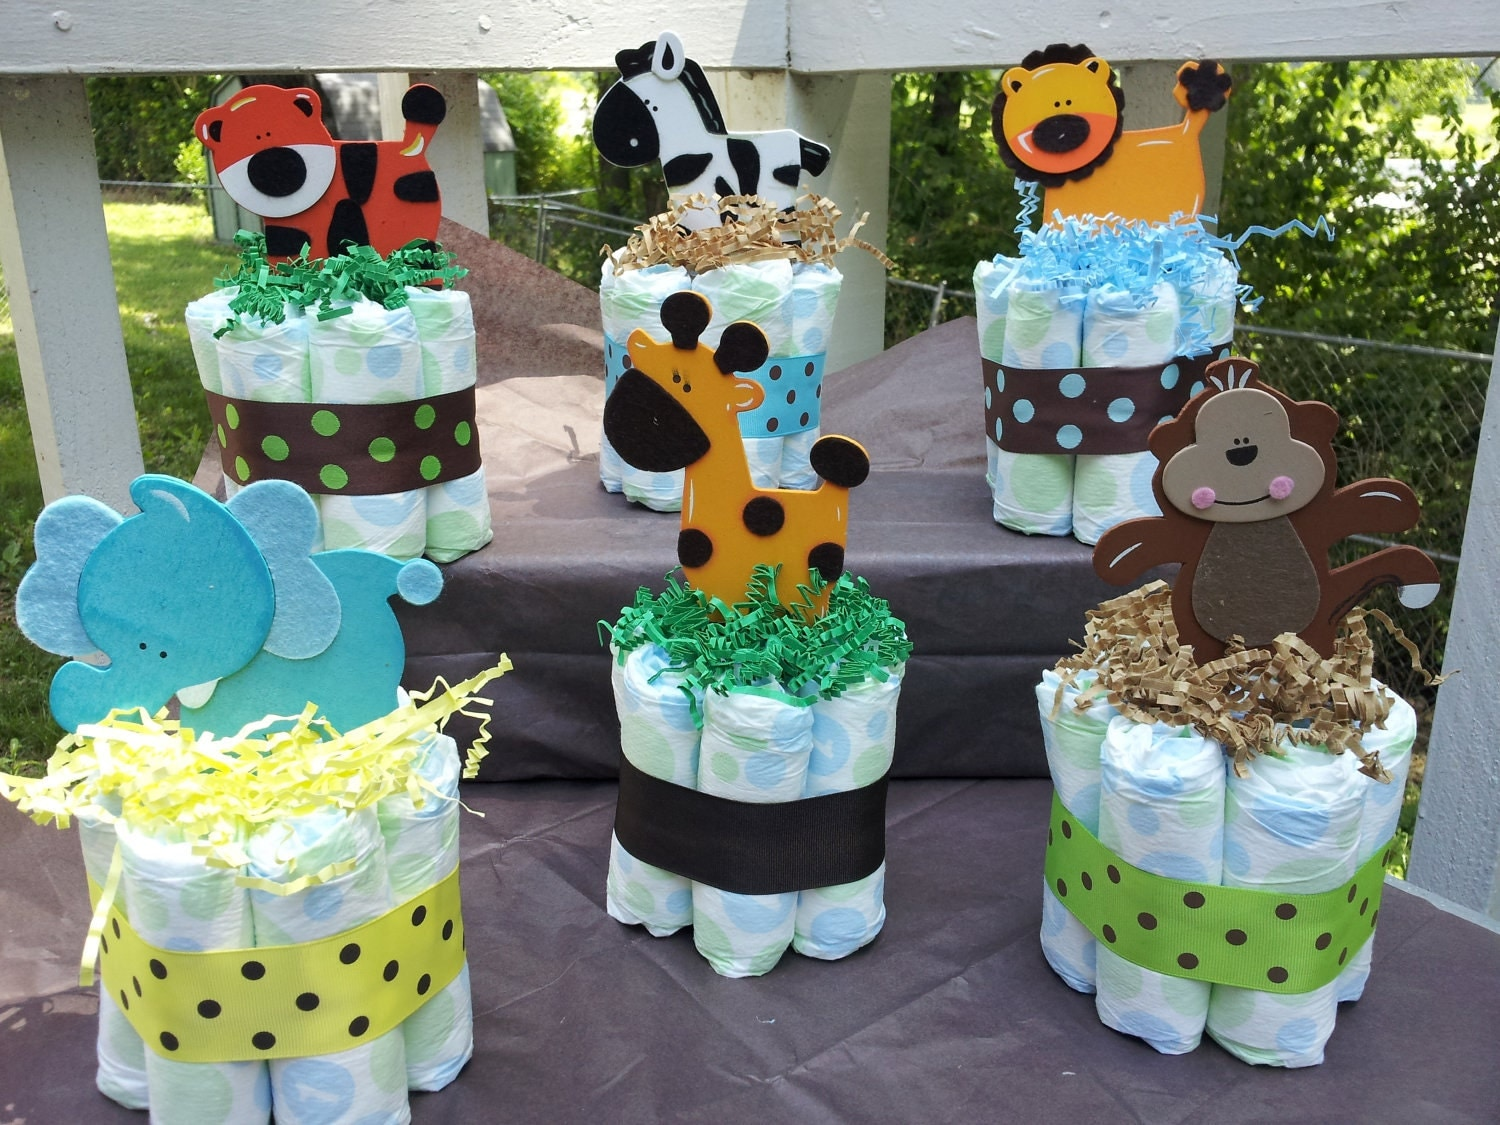 Diaper Cake Centerpiece For Baby Shower : 6 Jungle theme mini diaper cakes baby shower by ...